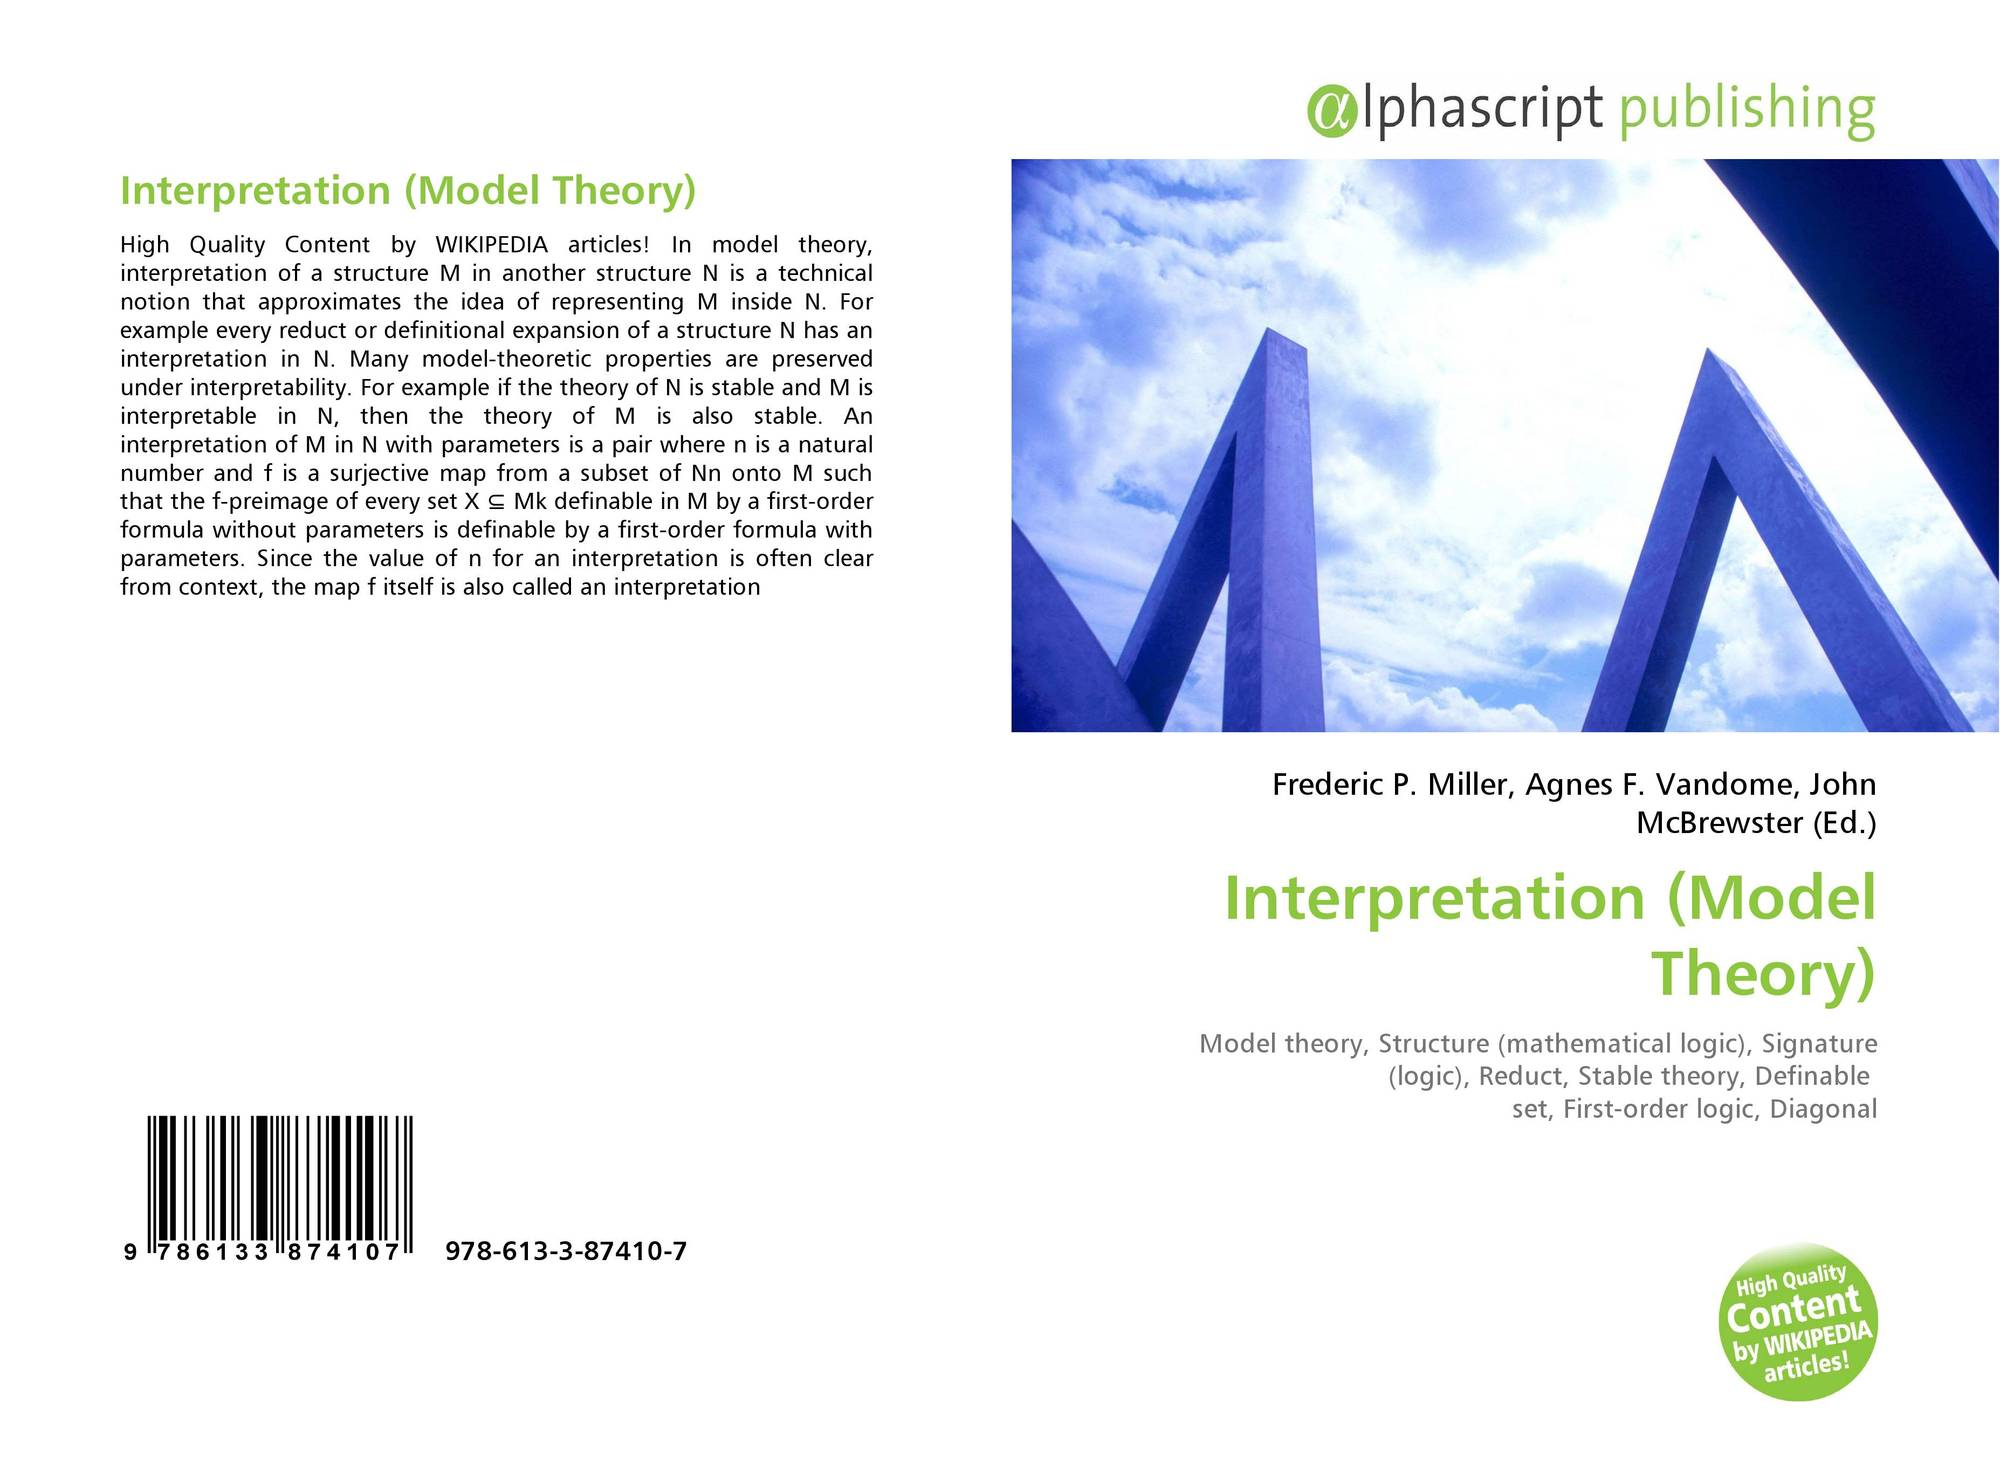 theories of interpretation Hermeneutics, or the science of interpretation, is well accepted in the humanities in the field of education, hermeneutics has played a relatively important role in understanding text.